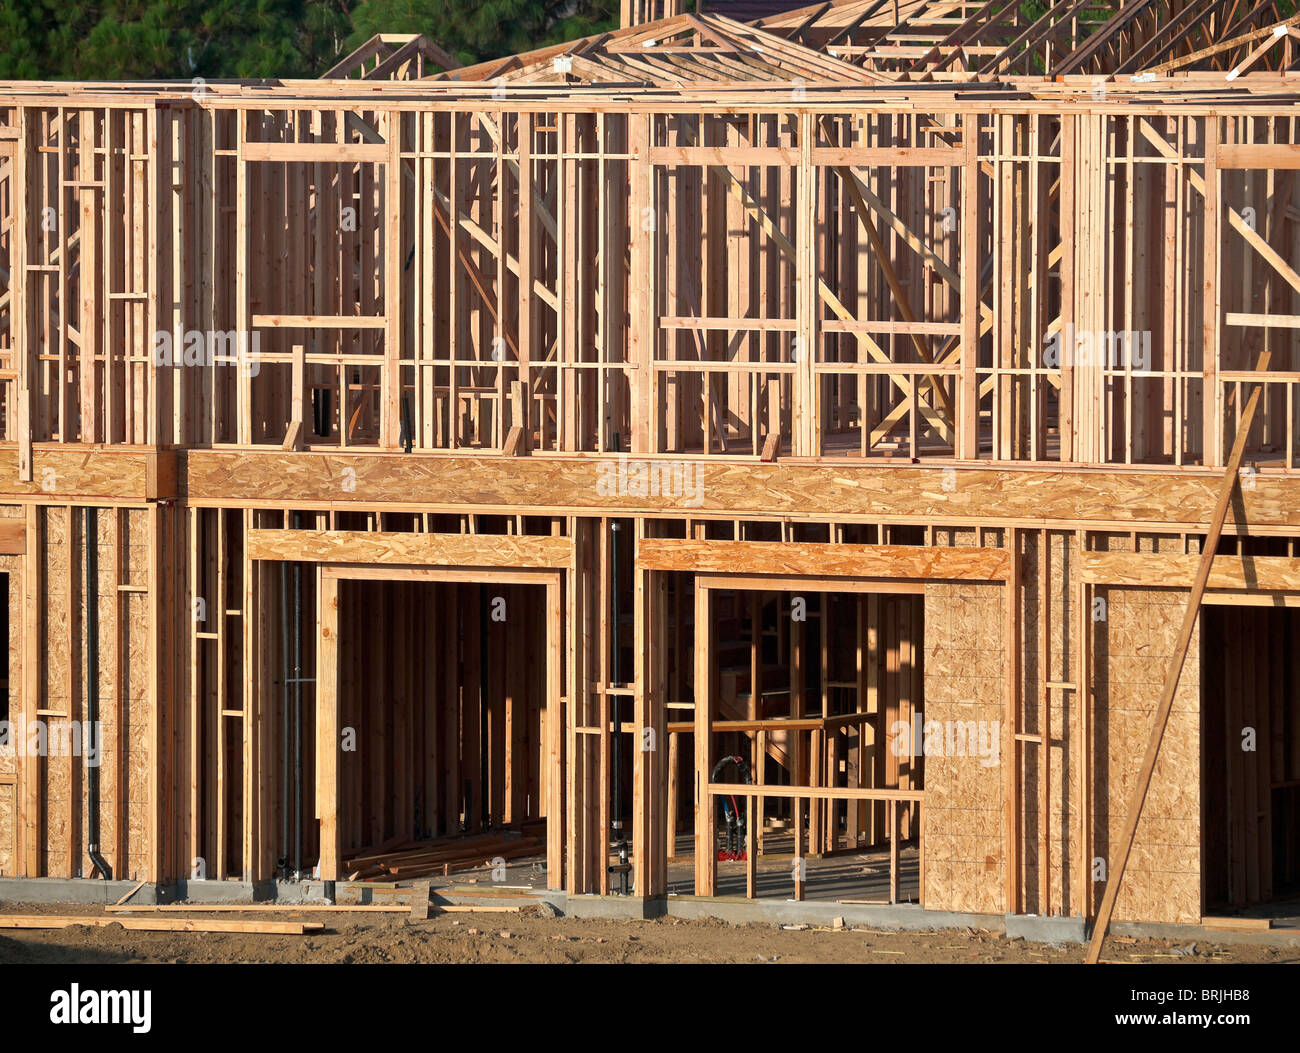 Typical house construction framing in warm early morning light. - Stock Image